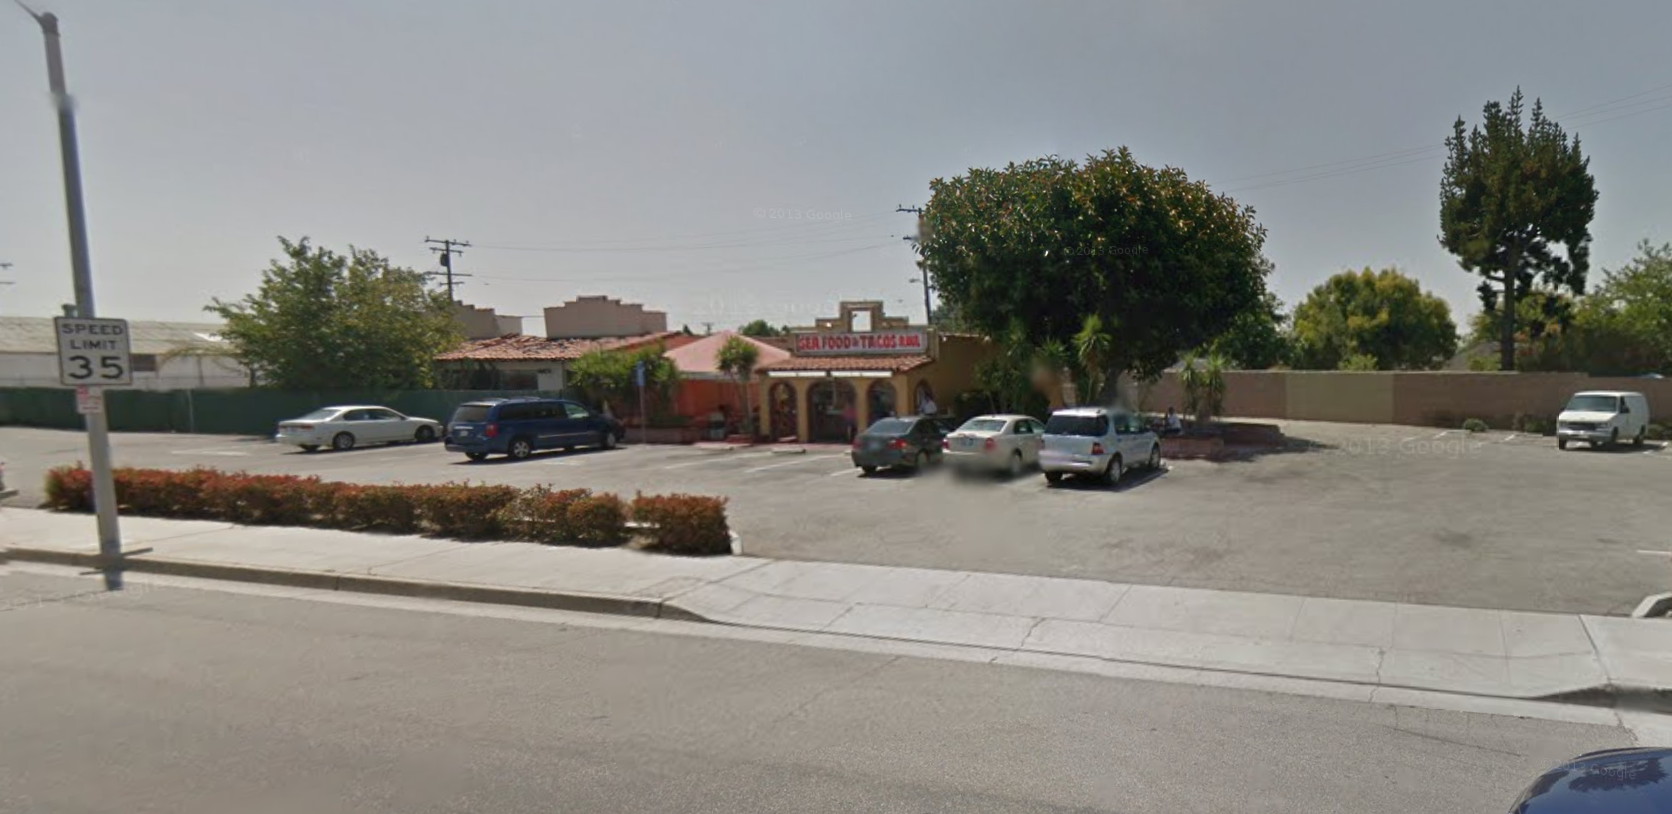 The original Taco Bell building on Firestone Blvd. in Downey, CA. The Seafood and Tacos Raul restaurant that had been located here closed in December and local preservationists believe it may be headed for demolition.